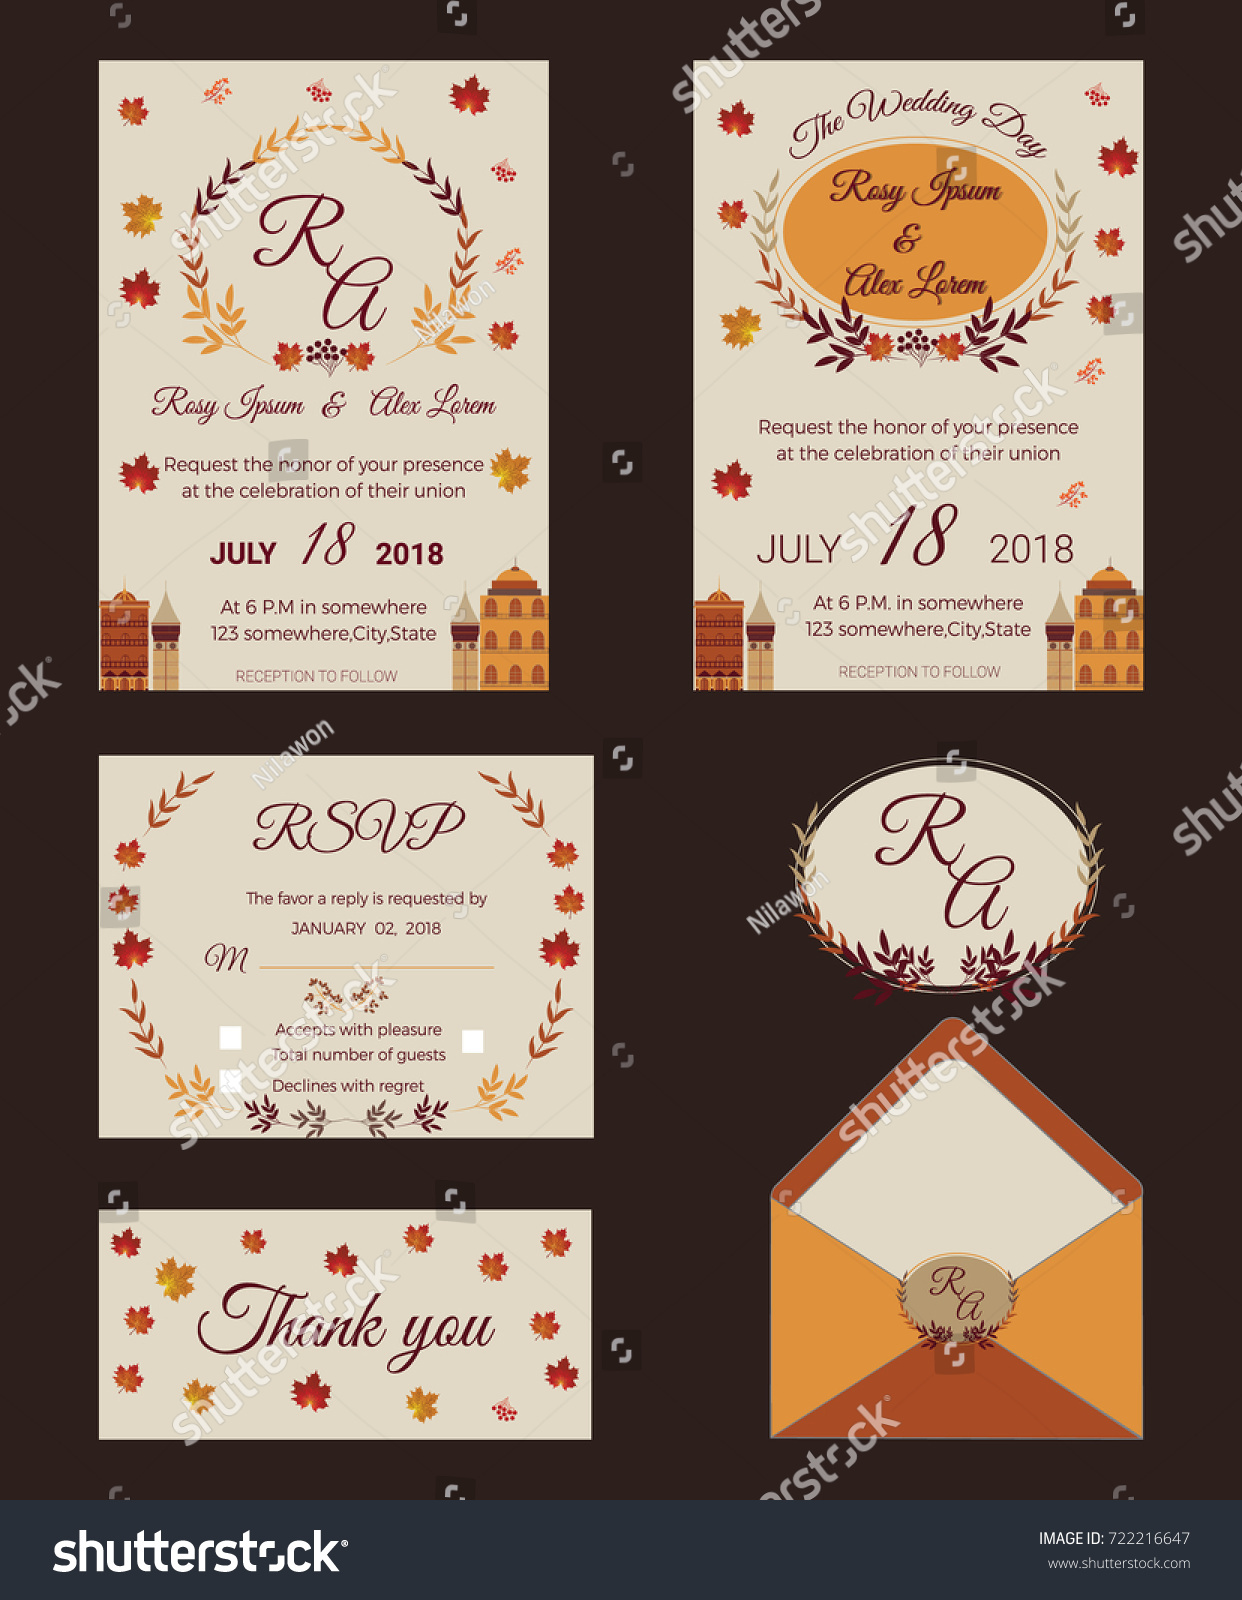 Wedding invitations rexcraft catalog home design ideas wedding invitations rexcraft catalog wedding invitation save date rsvp card stock vector wedding invitation save the monicamarmolfo Image collections